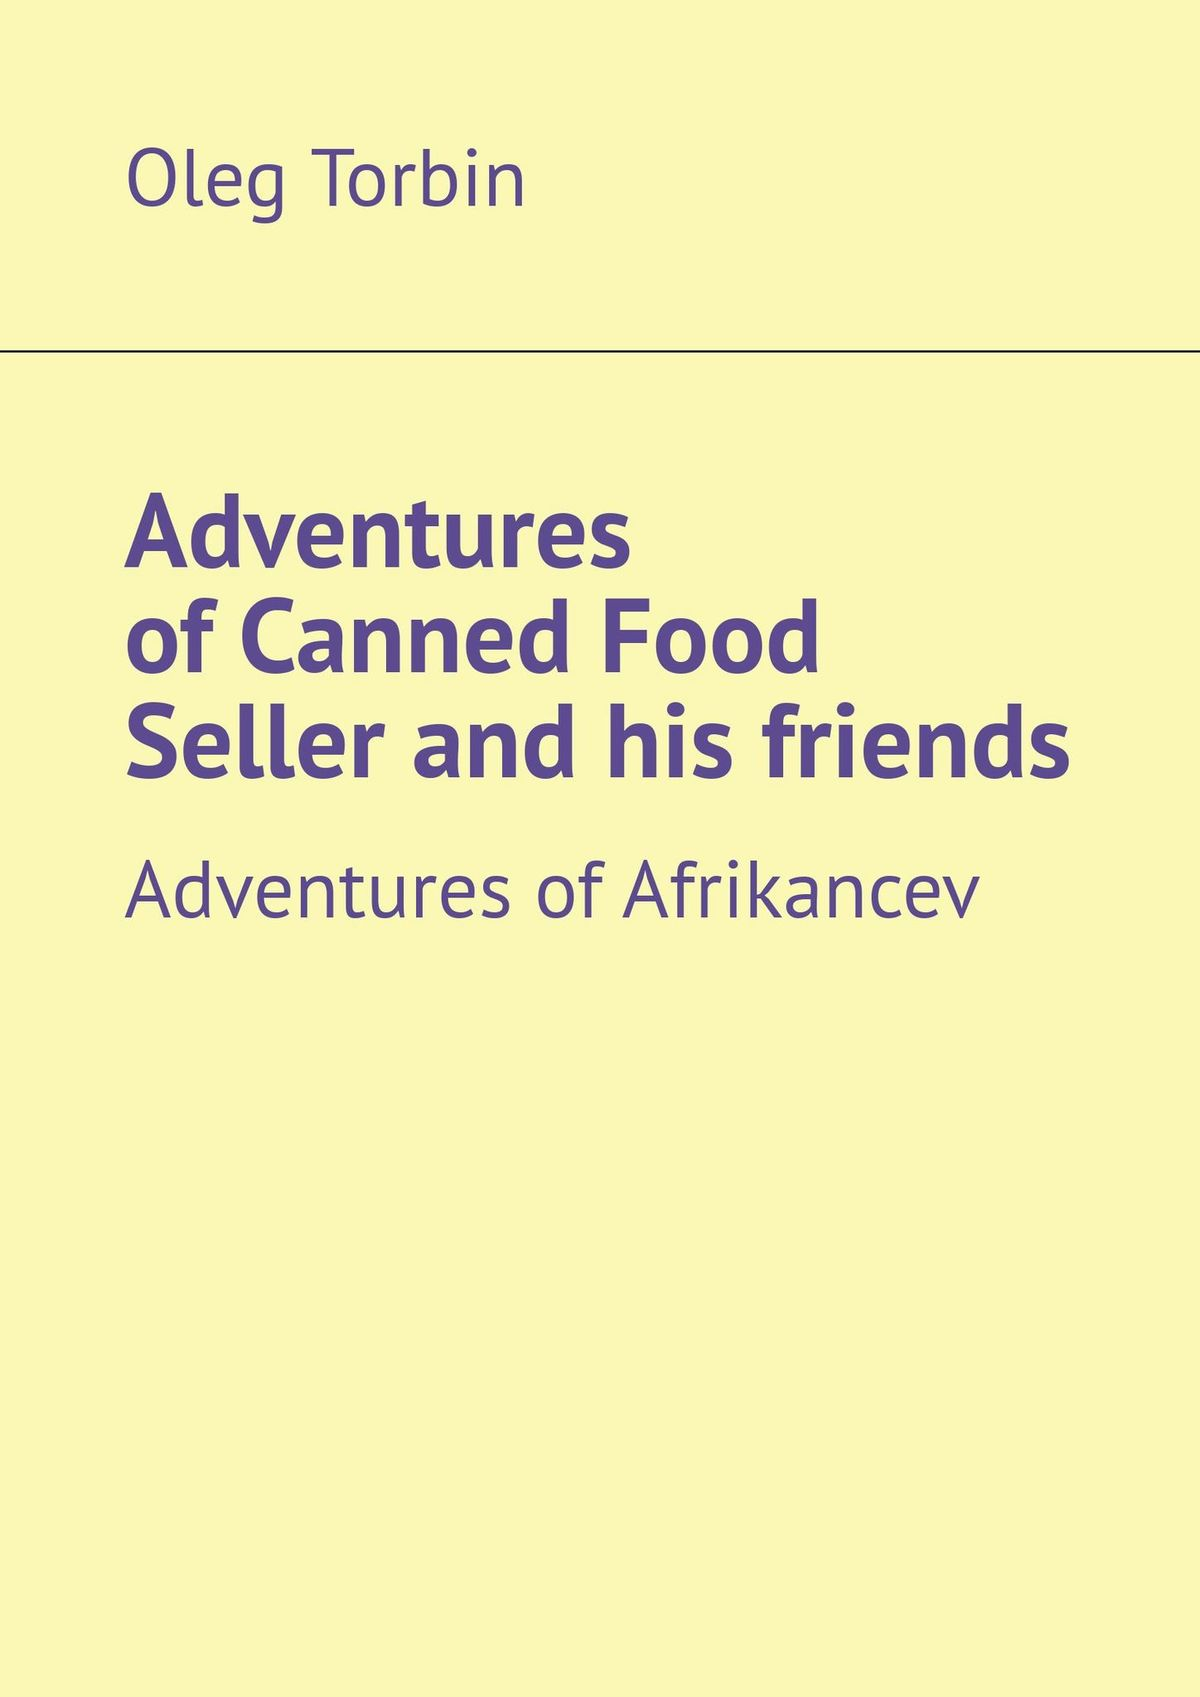 TOV Adventures of Canned Food Seller and his friends. Adventures of Afrikancev fawcett edgar the adventures of a widow a novel